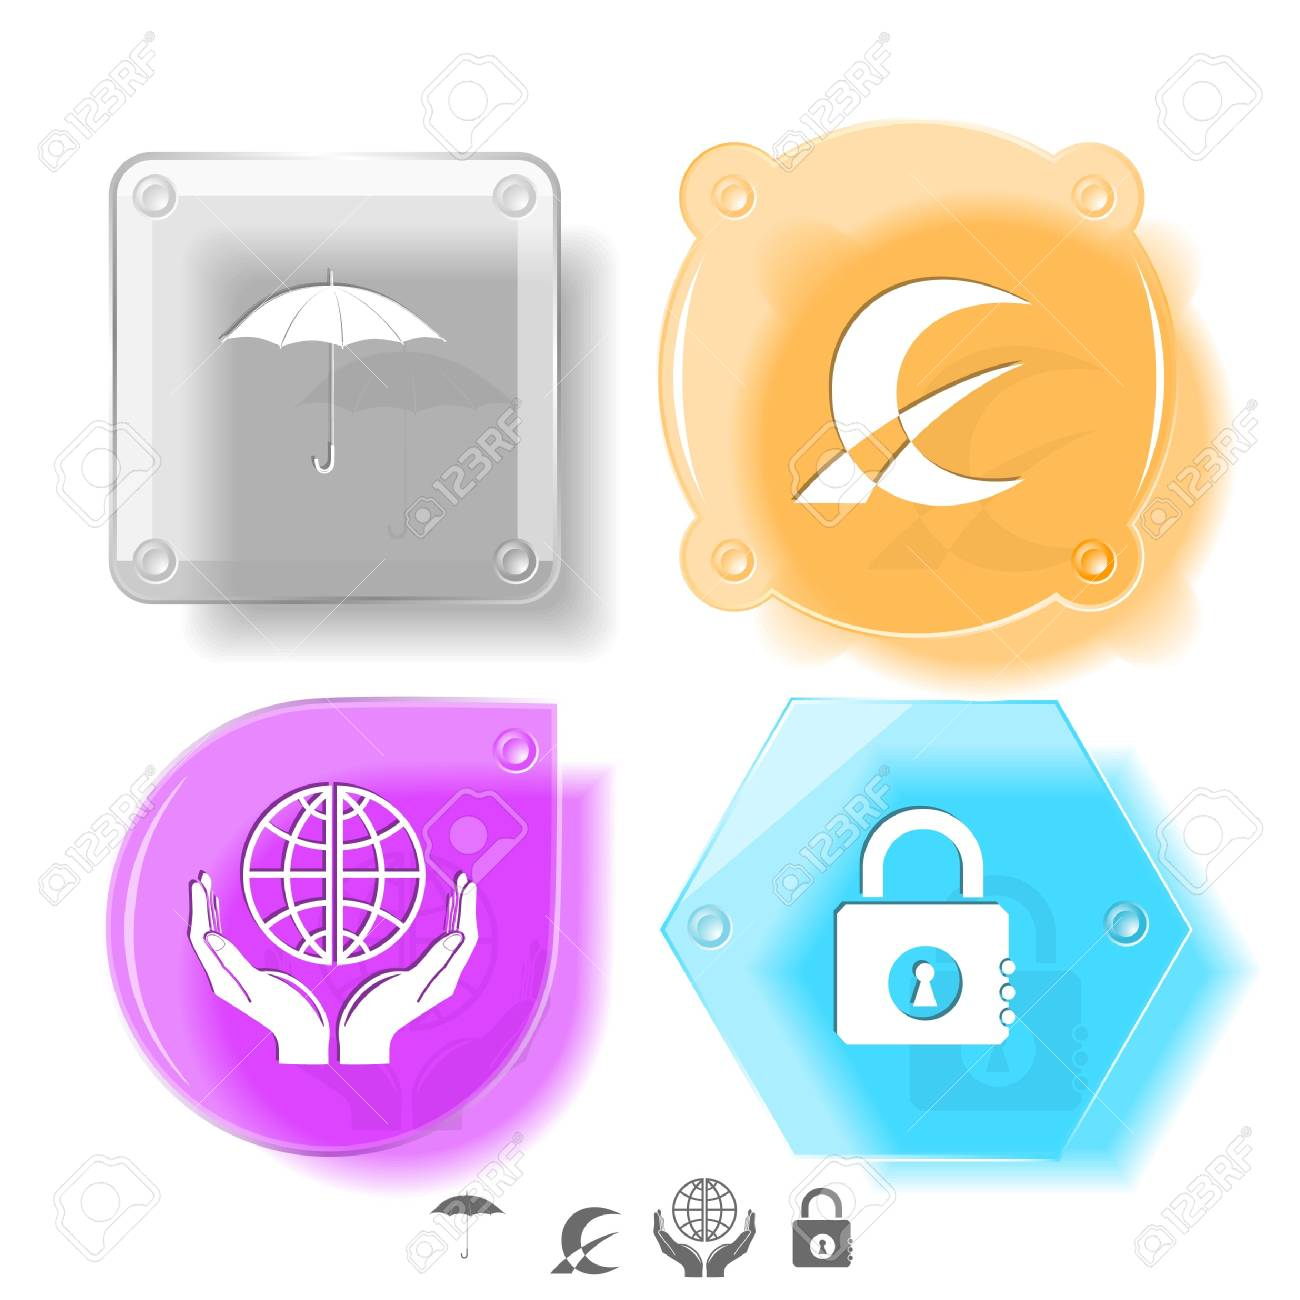 Business icon set. Protection world, closed lock, abstract monetary sign, umbrella.  Glass buttons. Vector illustration. Eps10. Stock Photo - 12920368